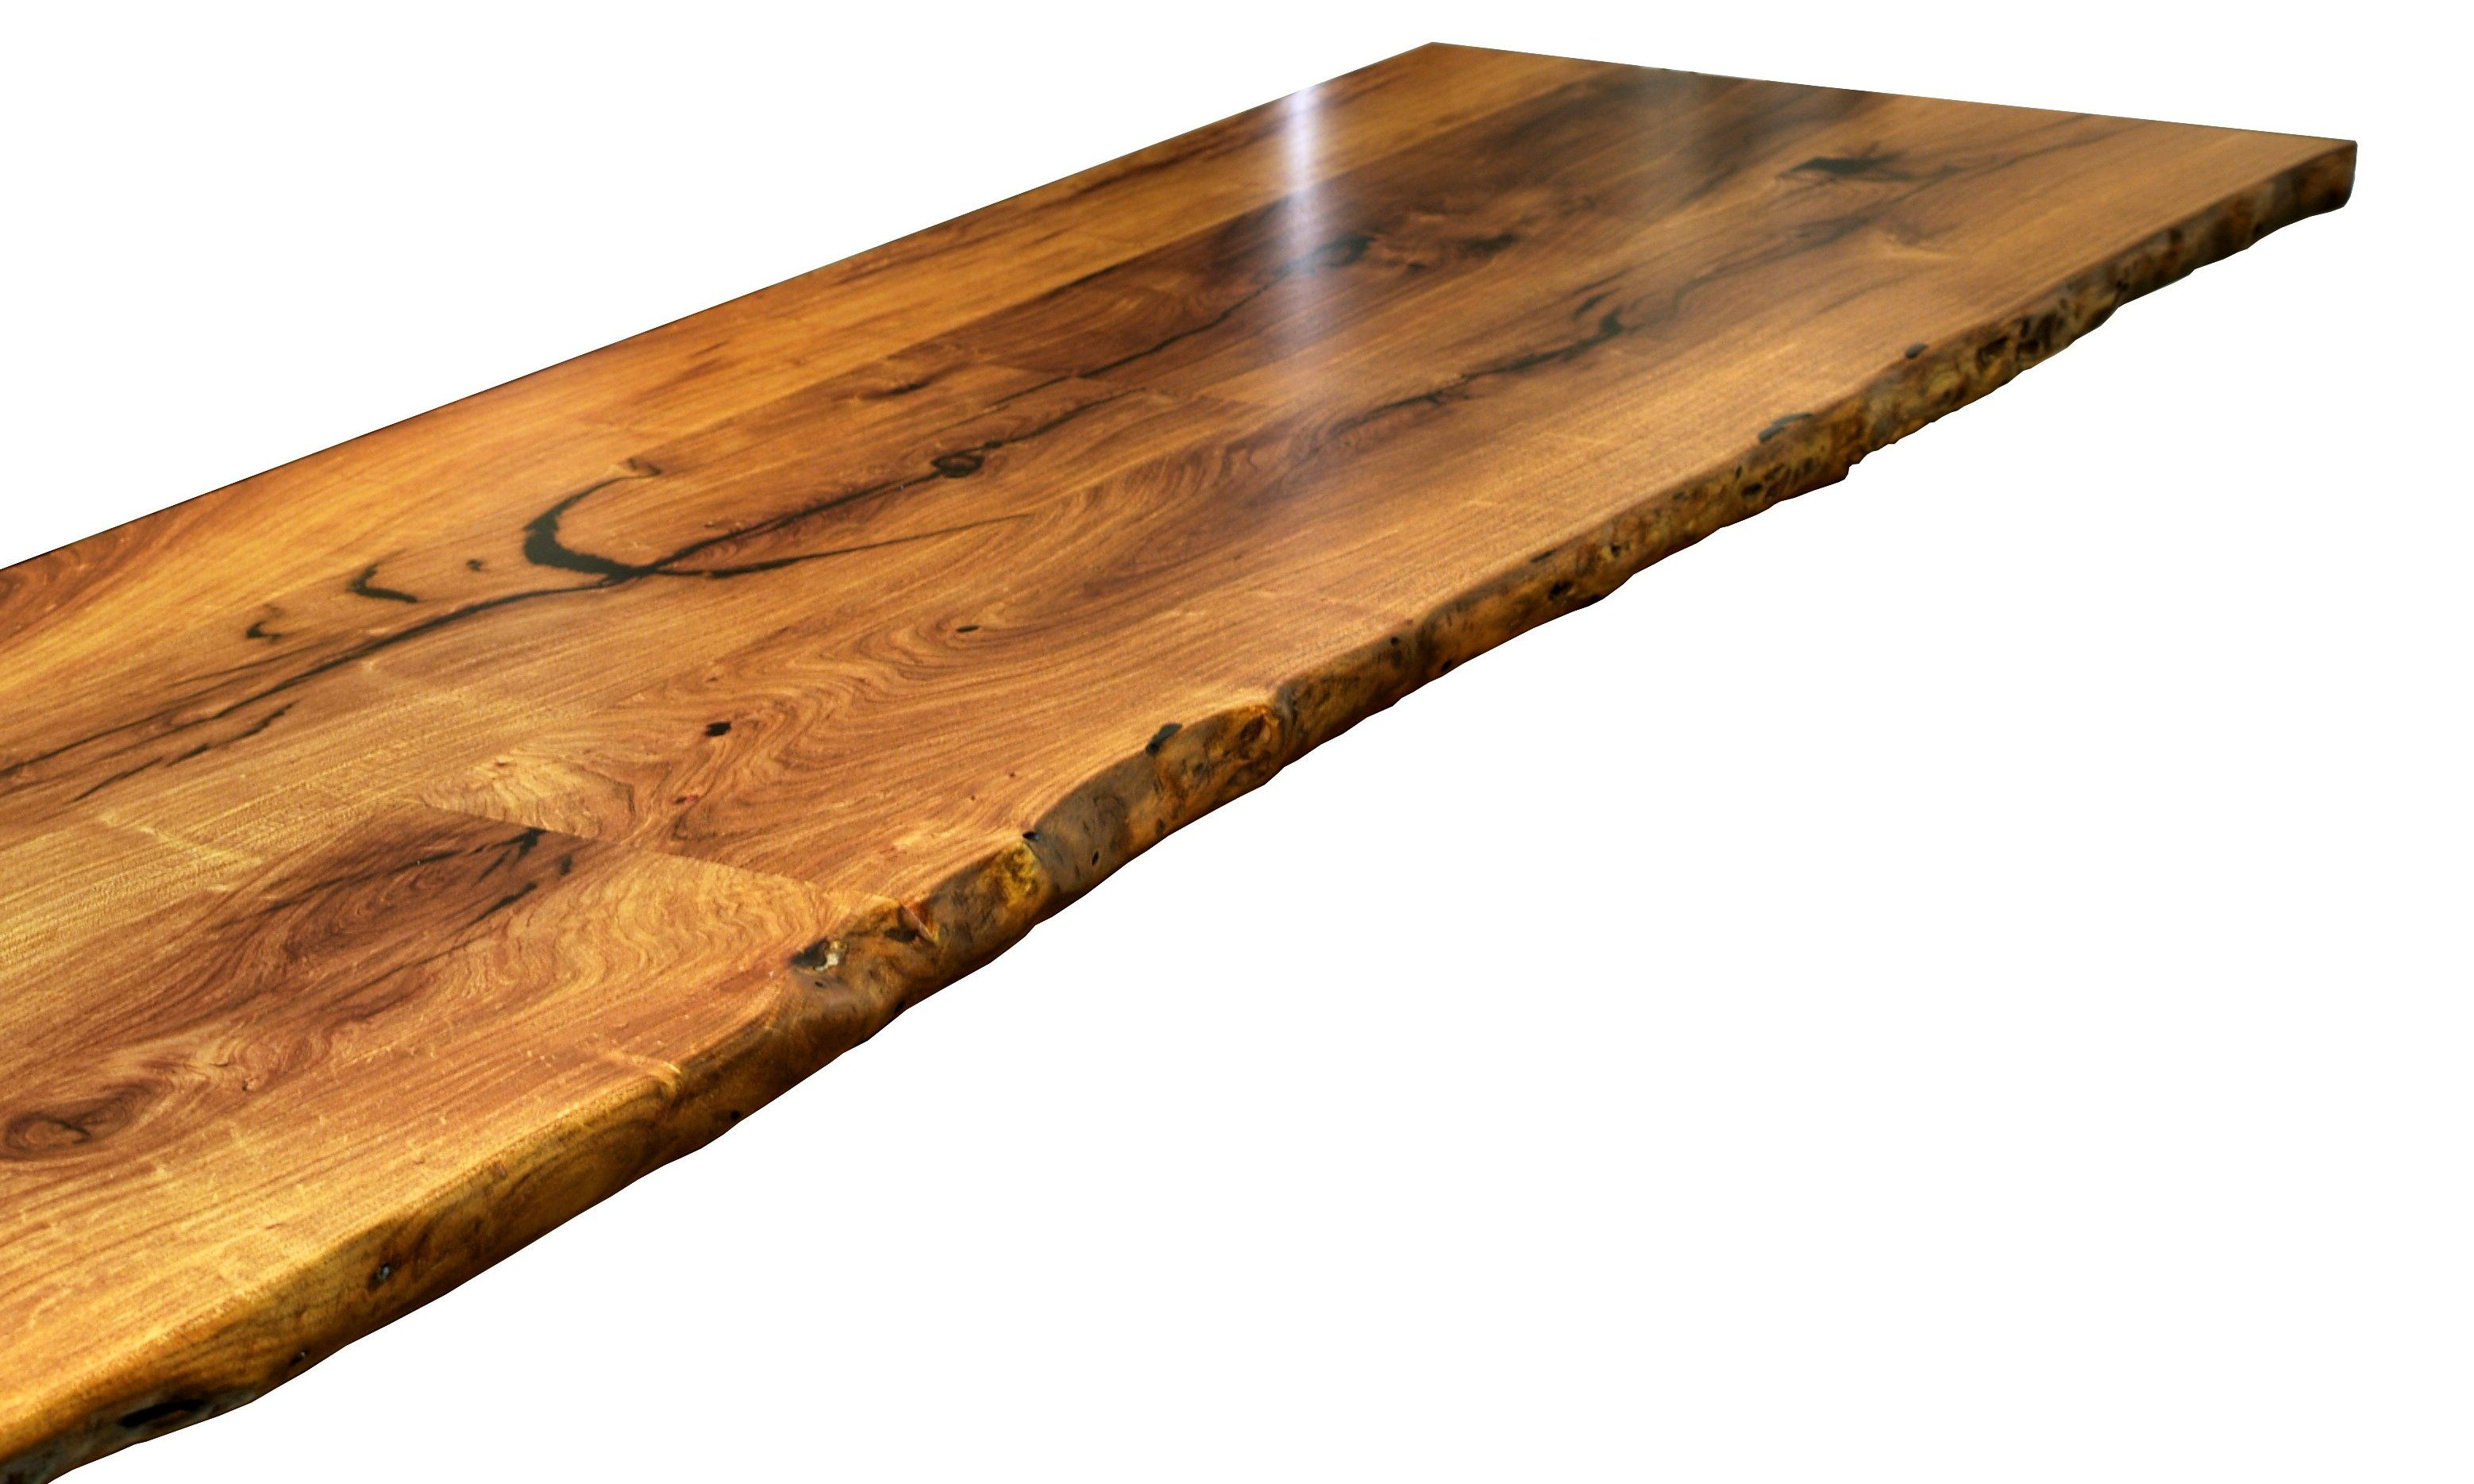 and custom awesome table on tops wooden countertops edges natural wood wane